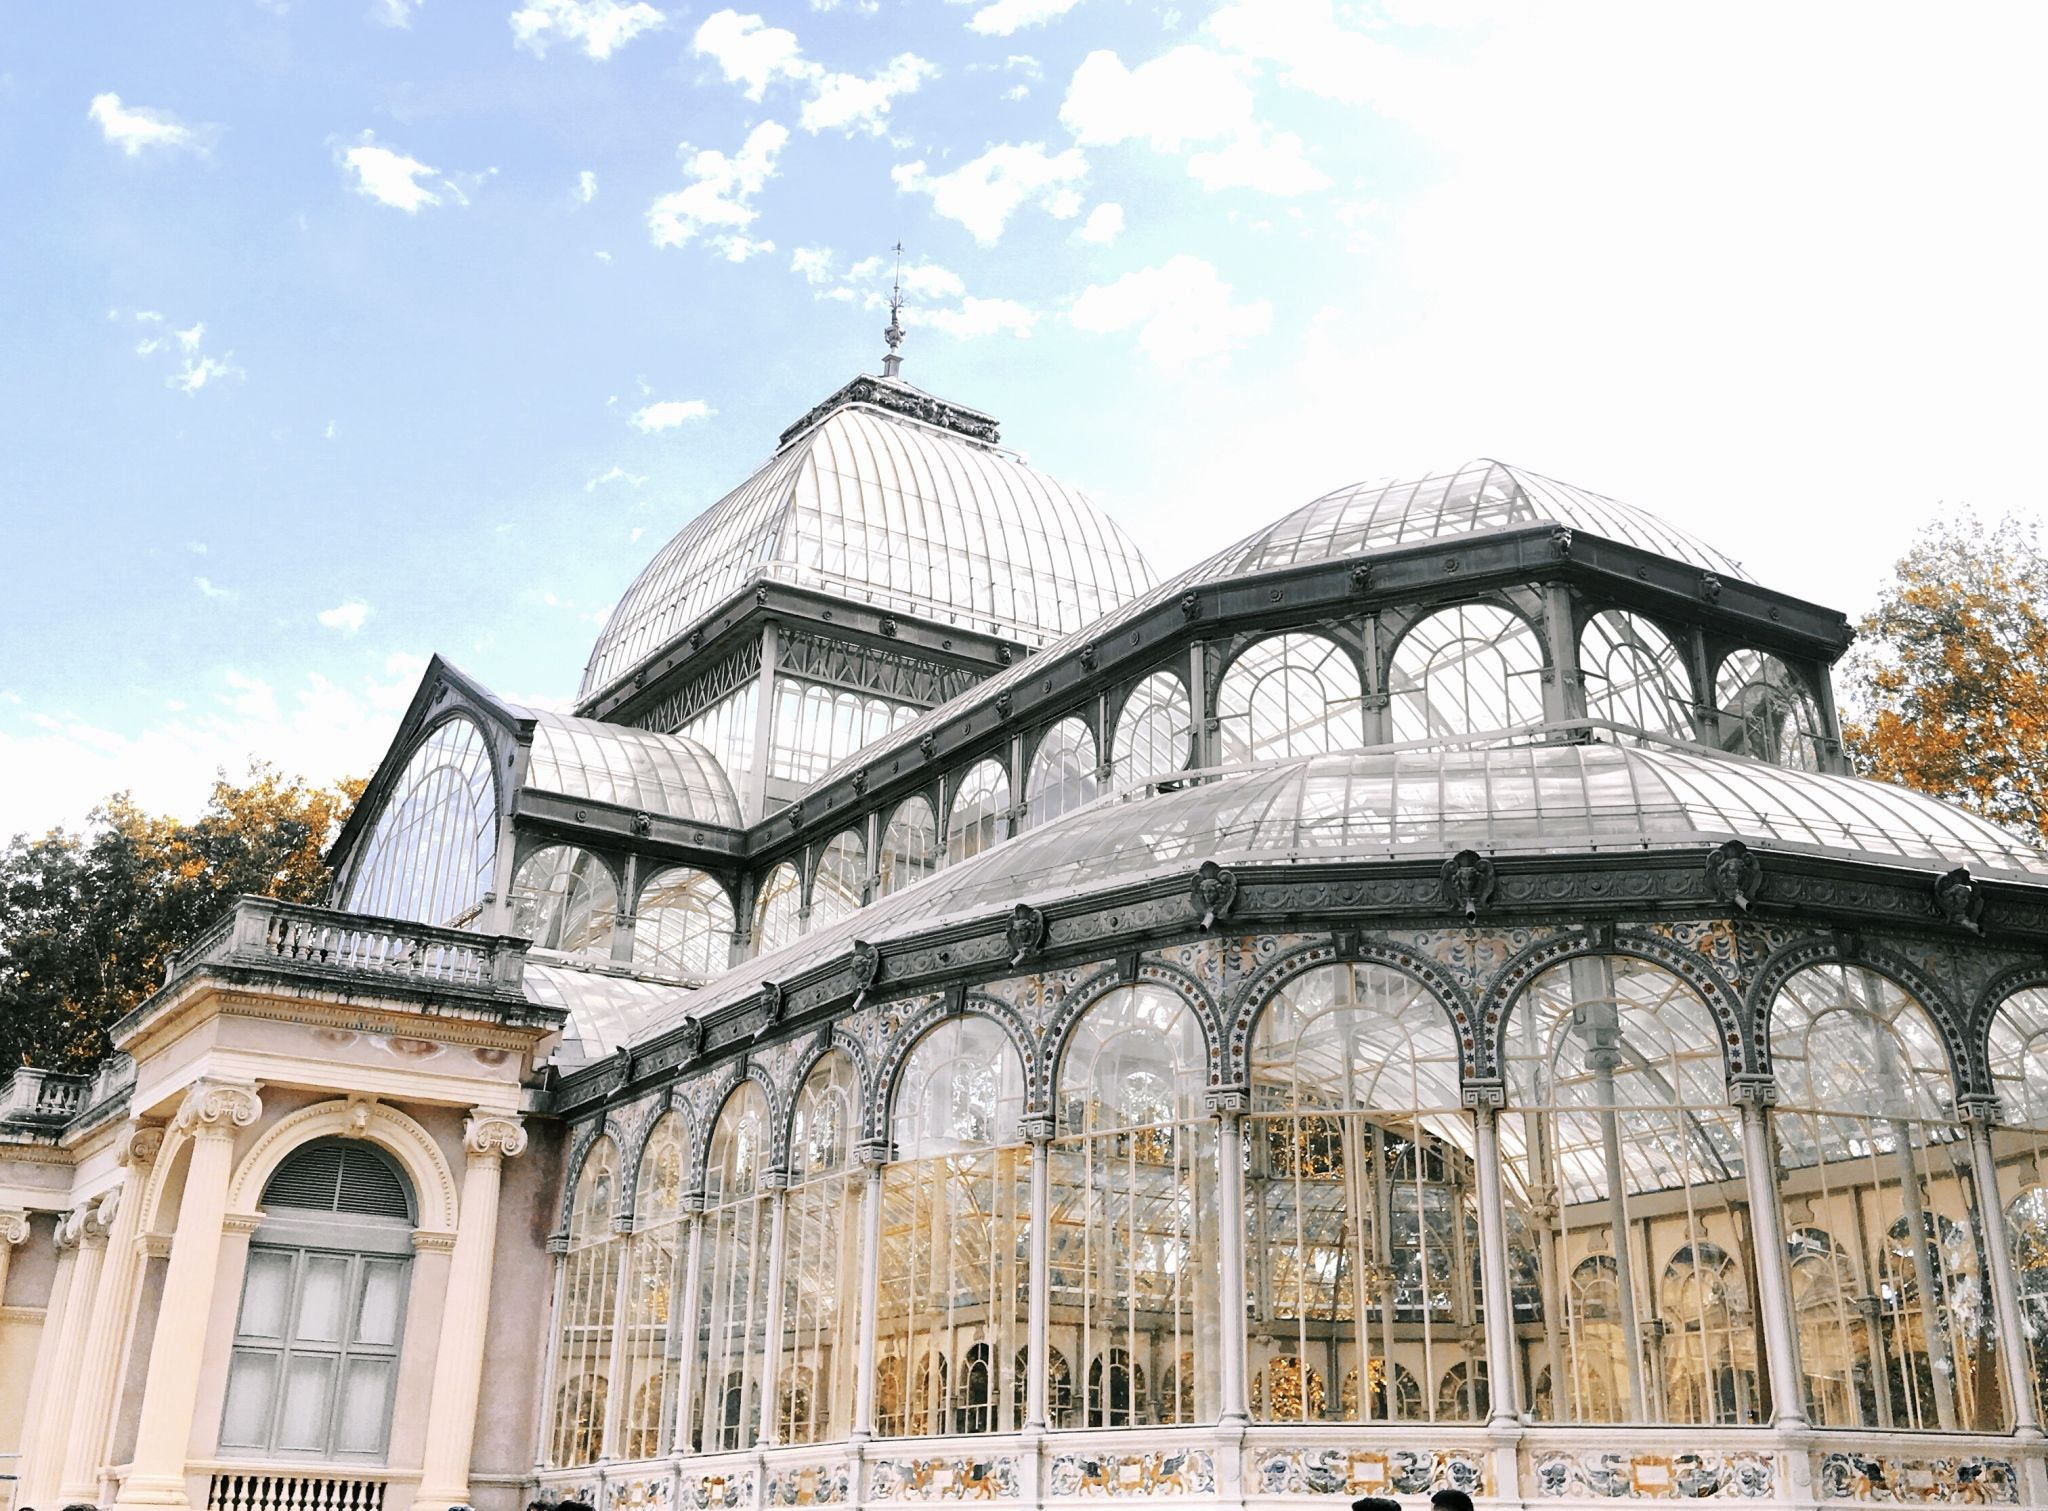 Palacio de Cristal, Madrid Spain, Cranberry Tantrums, Madrid Travel Diaries